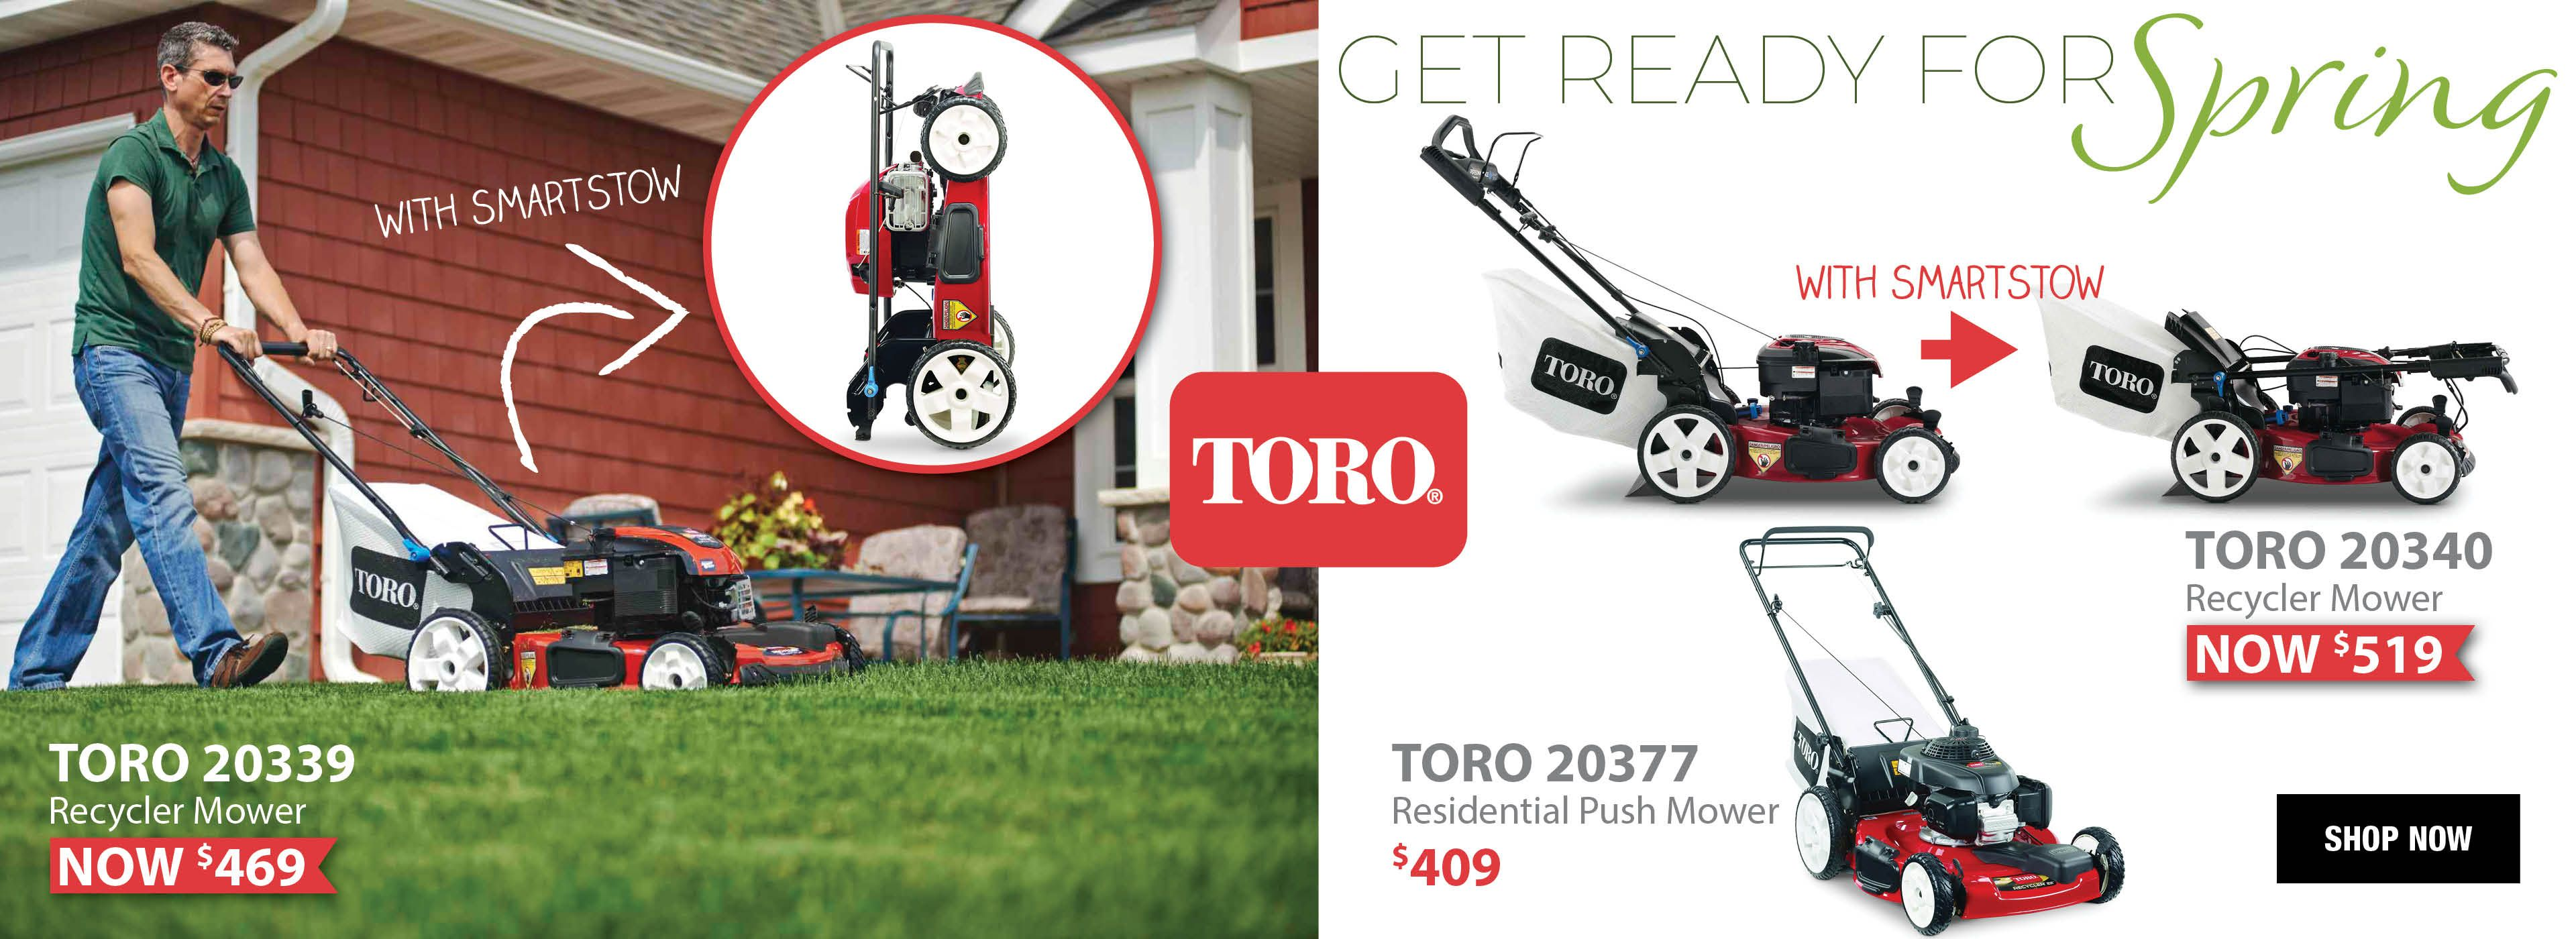 Get Ready For Spring with the Toro SmartStow Folding lawn mower